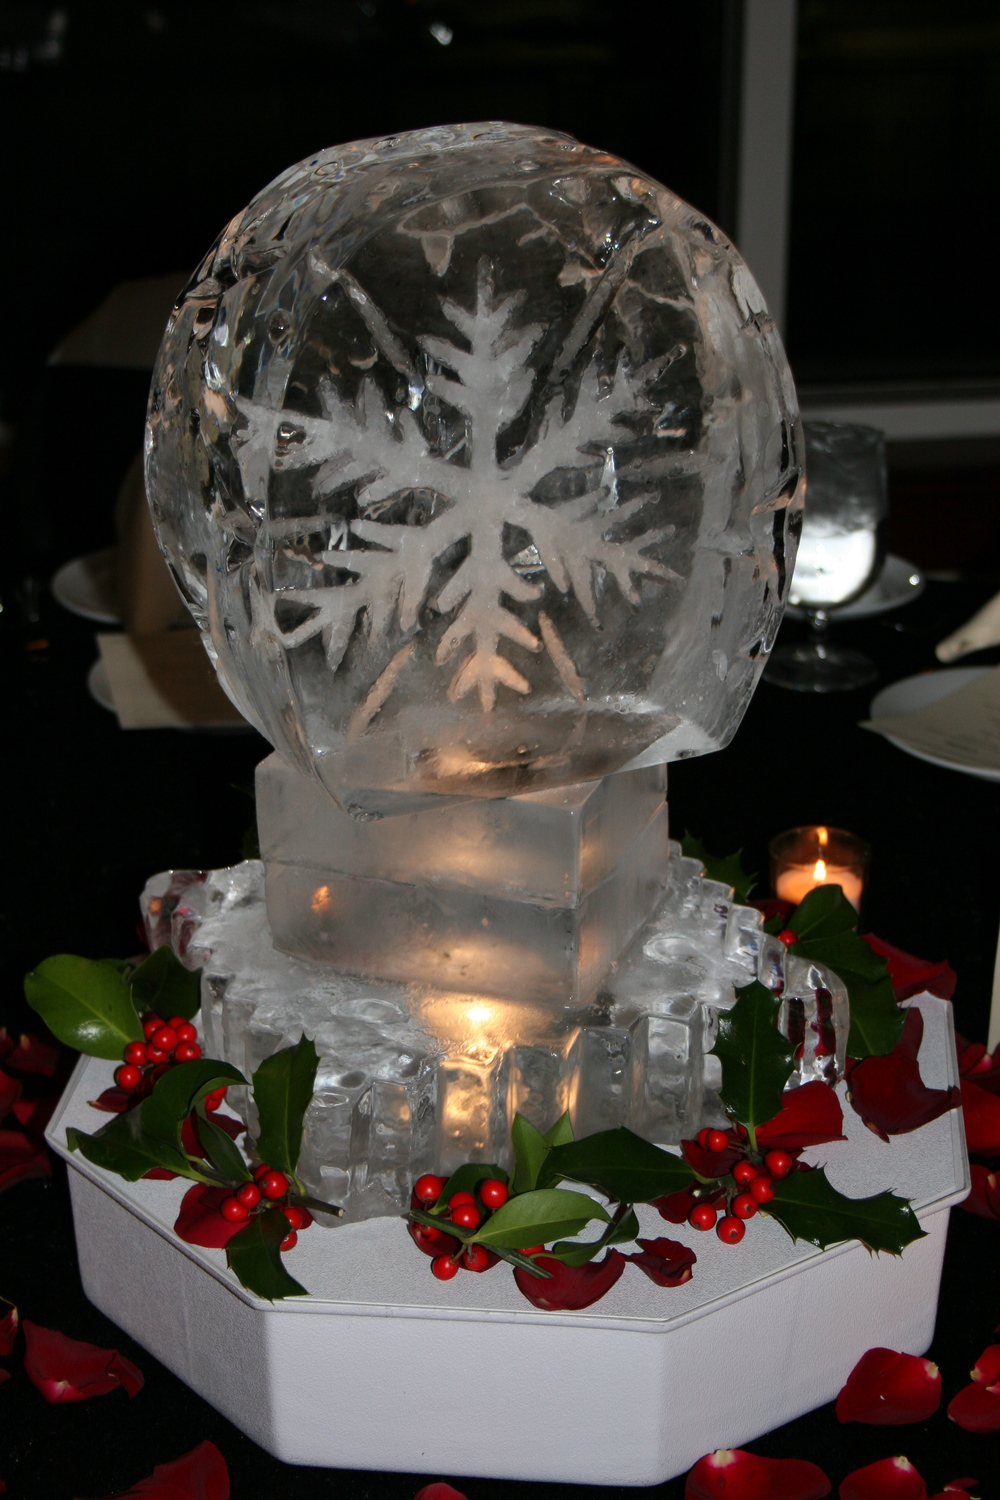 Tabletop-Ice Sculptures-Snowflakes 3.JPG